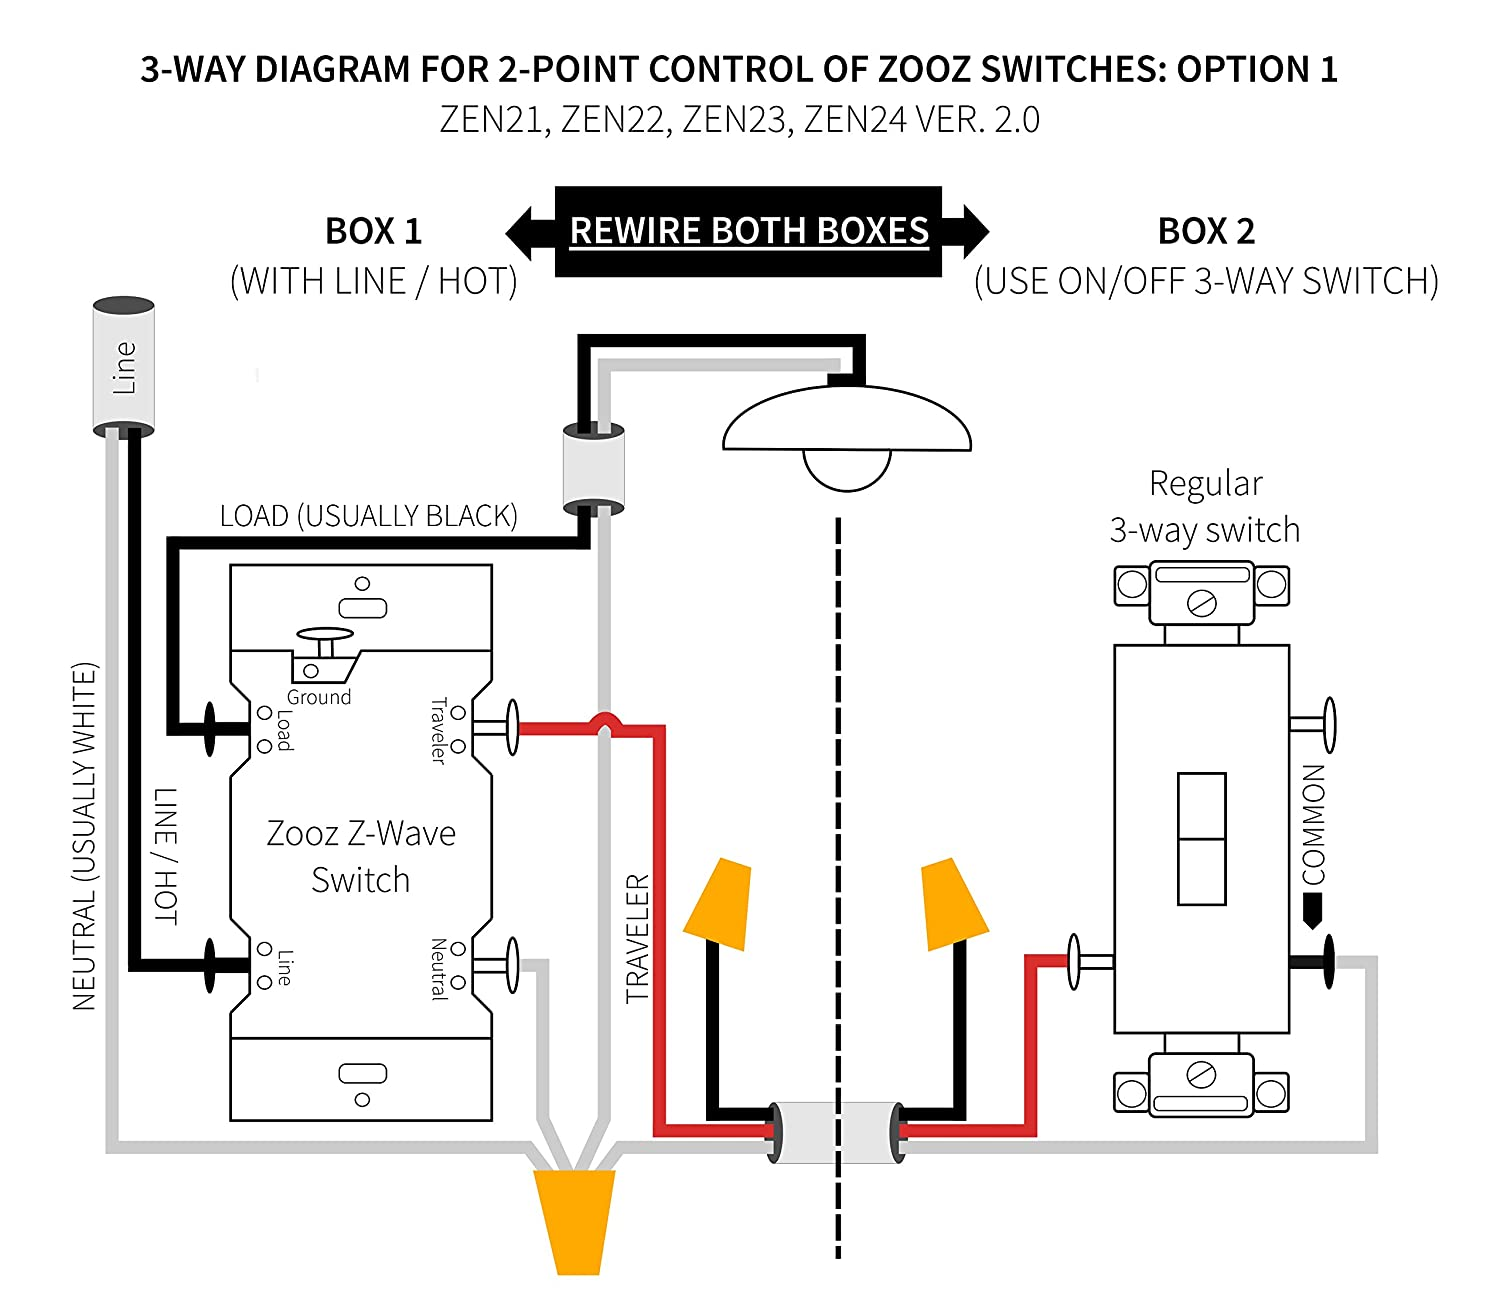 2 Way Switch Wiring Diagram Zooz Z Wave Plus On Off Wall Zen21 White Ver 20 Works With Existing Regular 3